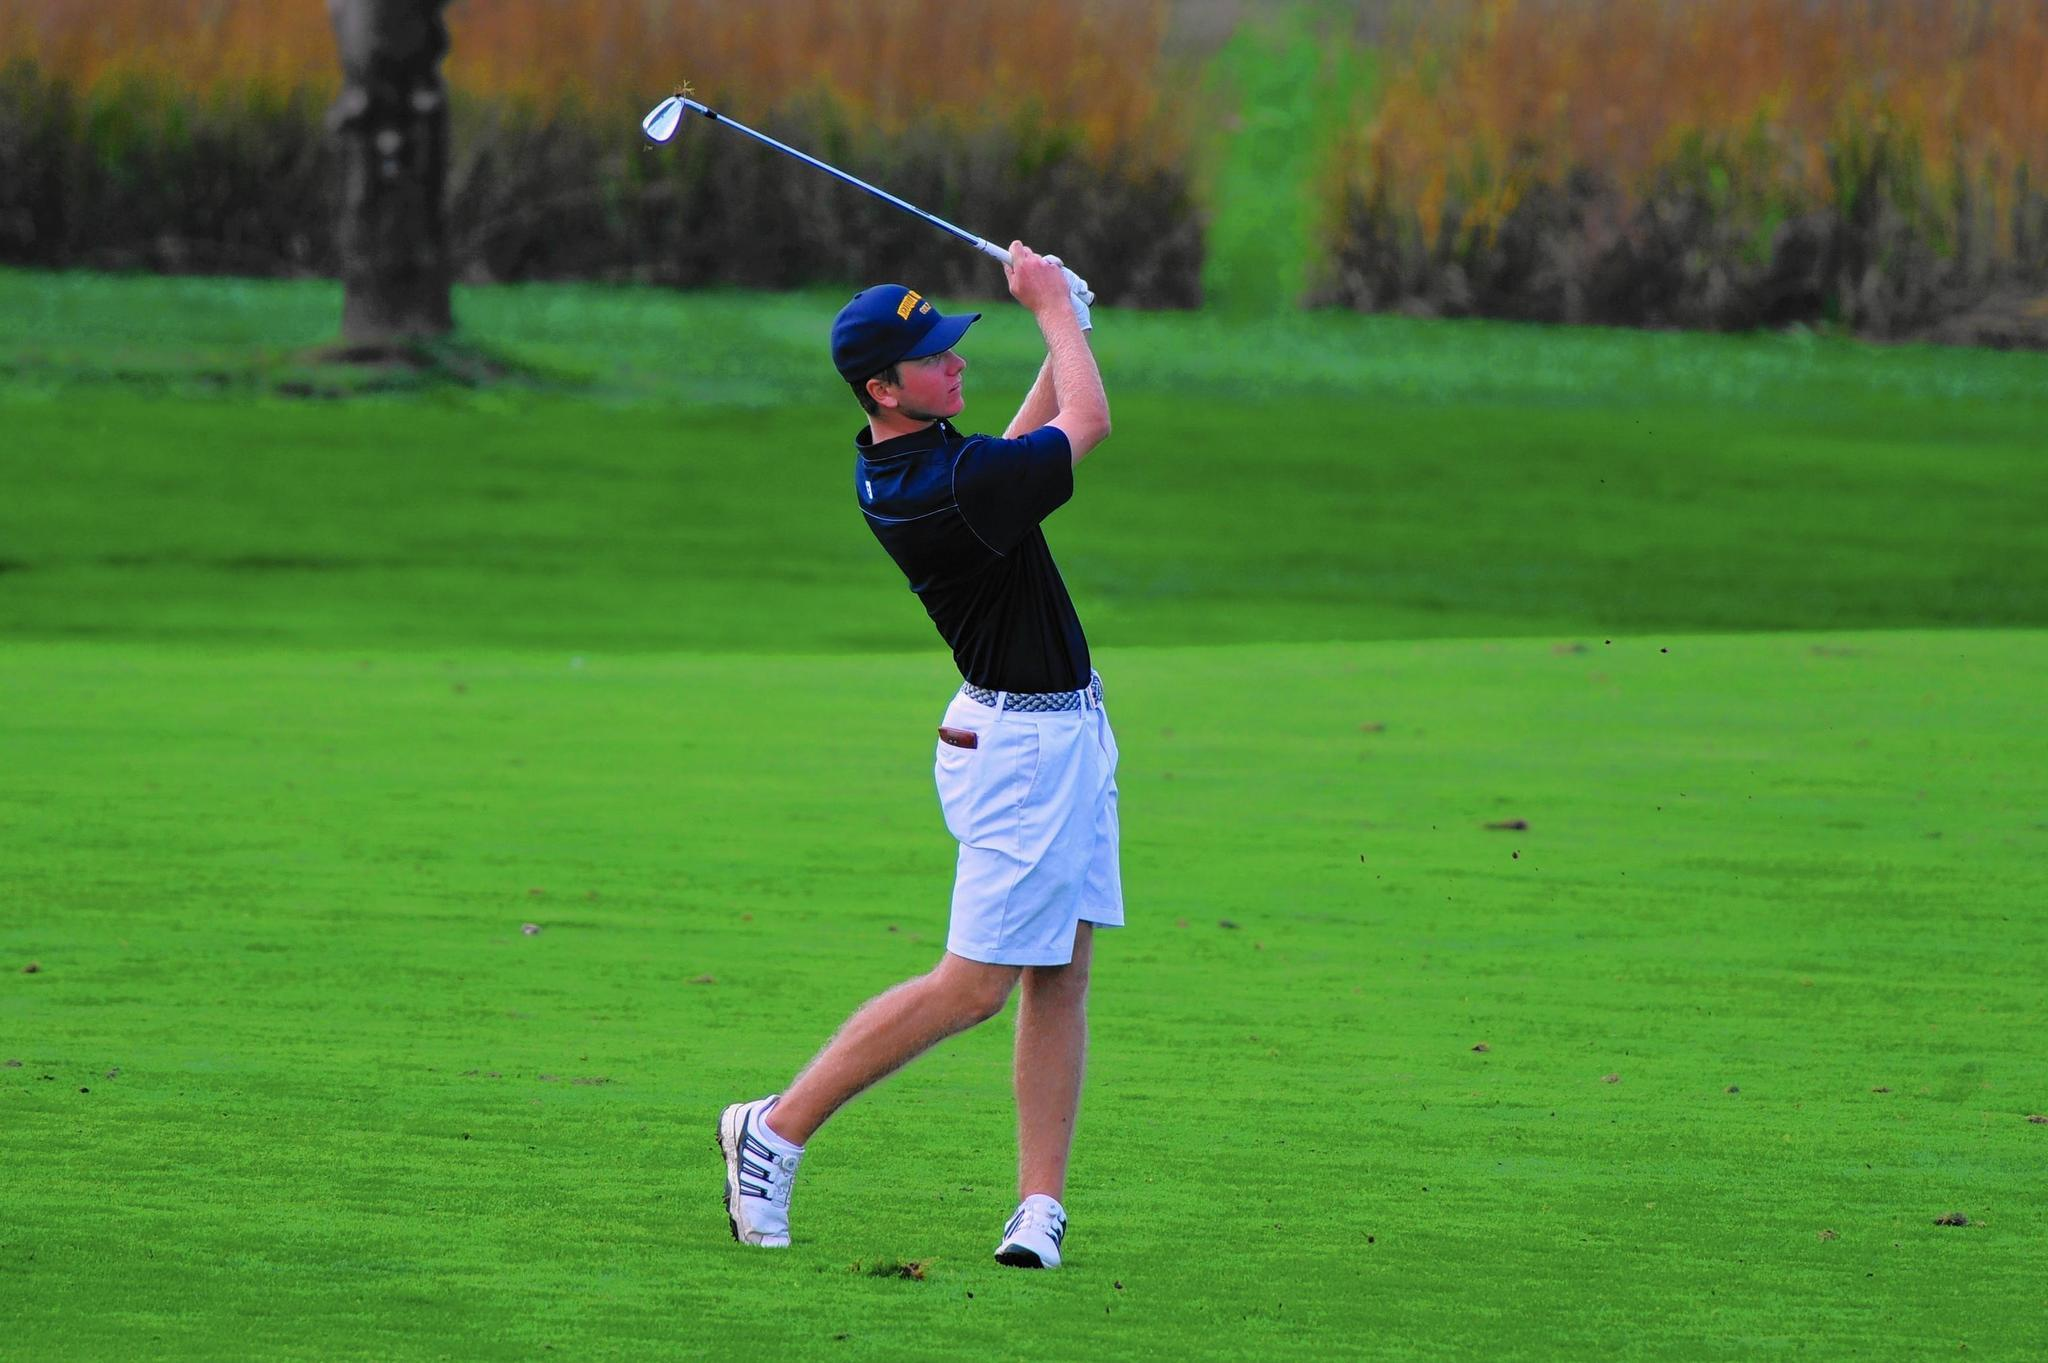 Neuqua Valley's Jack Vercautren places second in the boys golf state finals